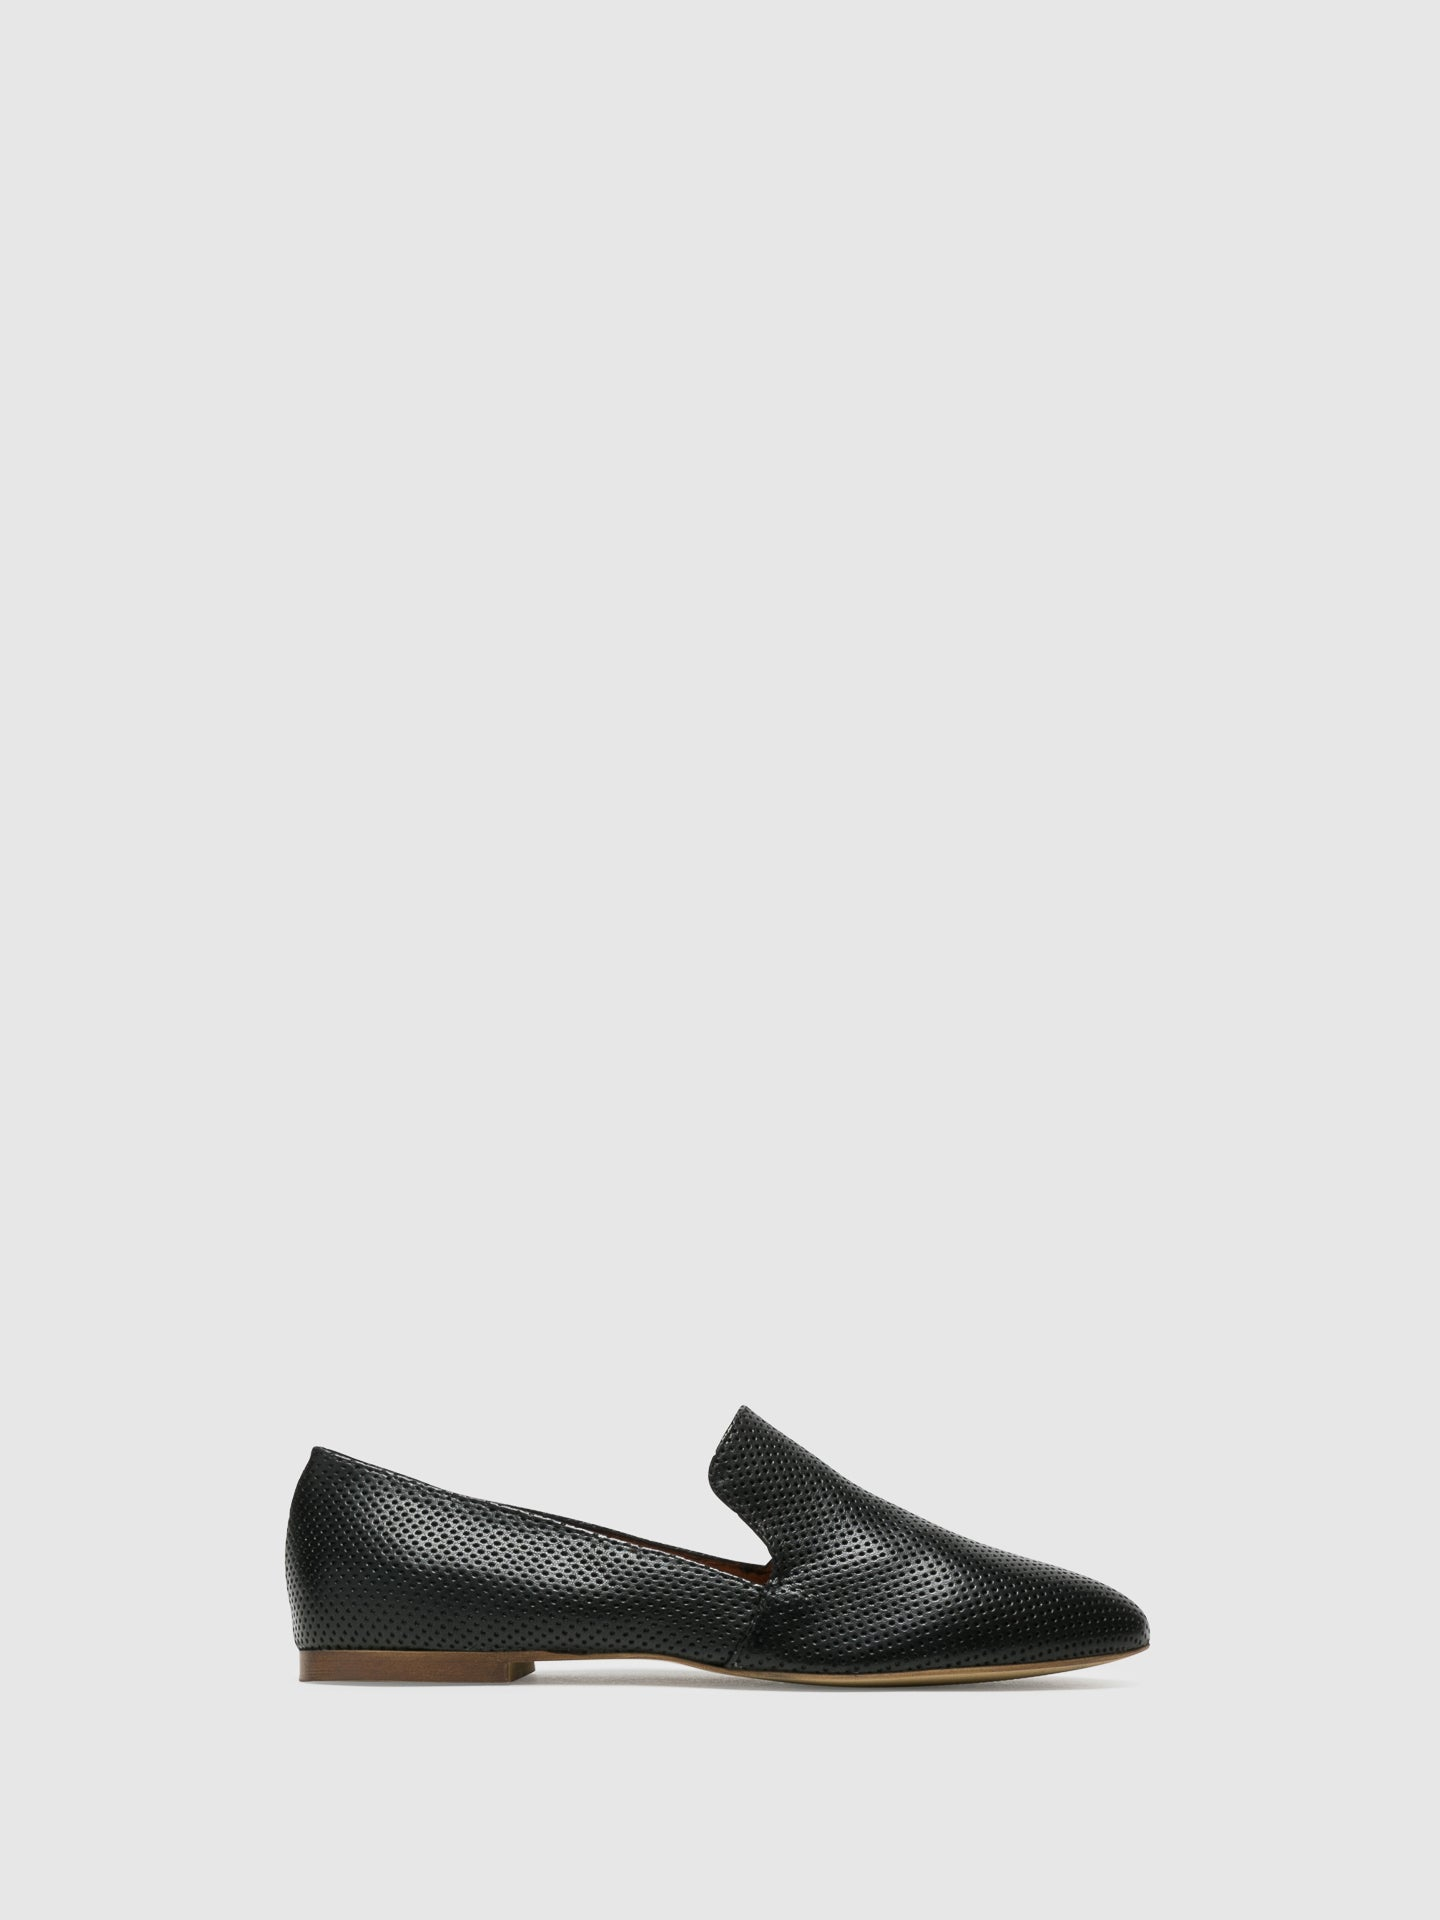 Bos&Co Black Loafers Shoes